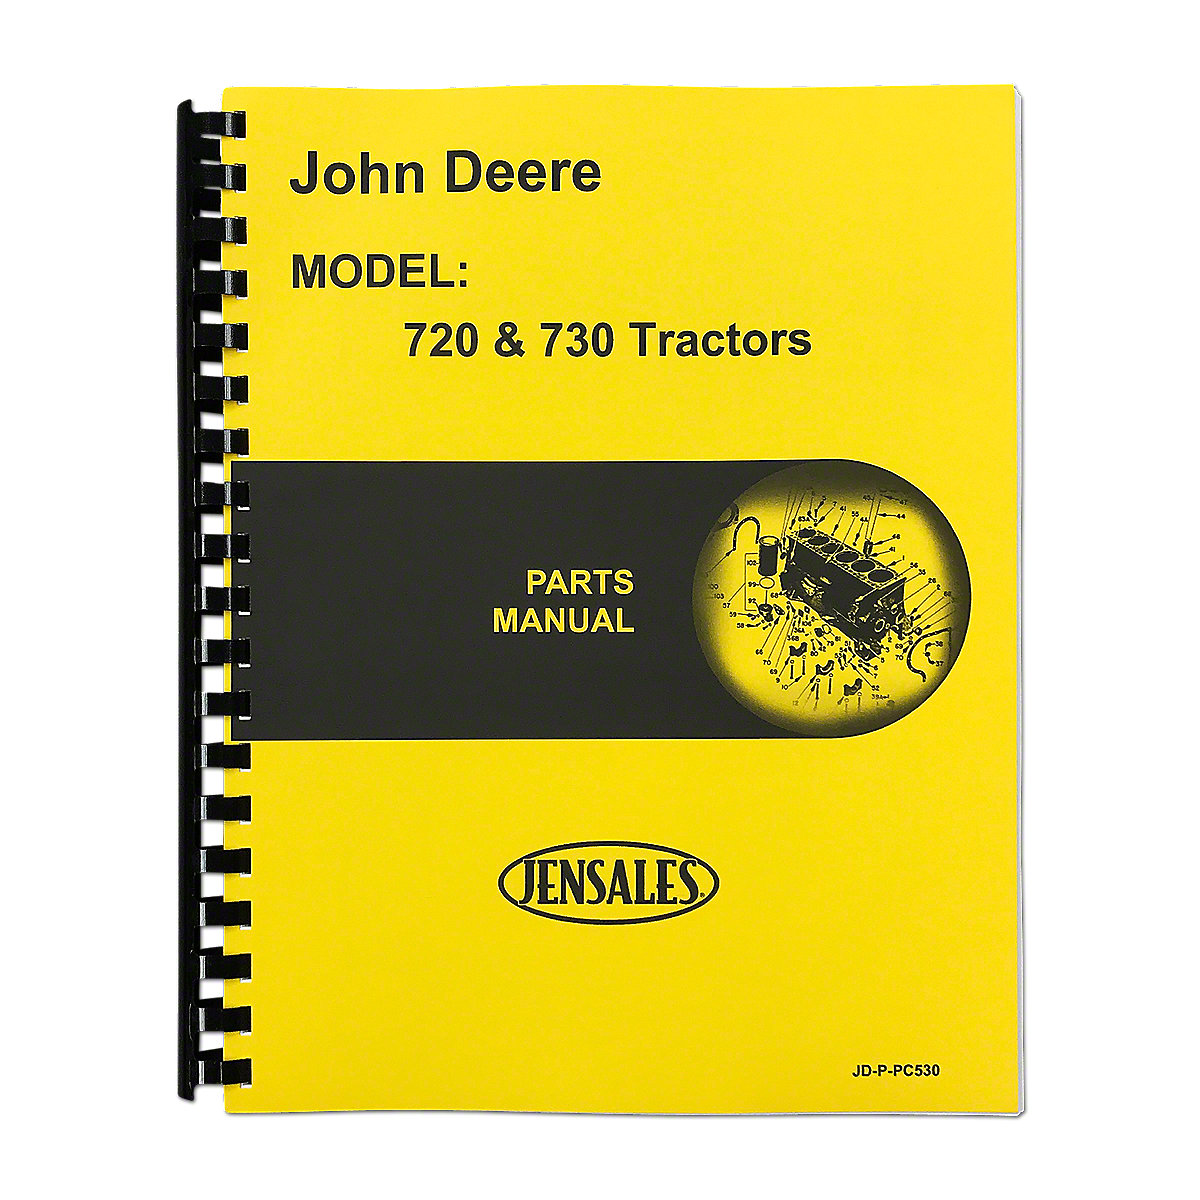 Wiring Diagram For 720 John Deere Tractor Schematics Diagrams 4020 24 Volt Free Picture Engine Image Jeep Wrangler Ford Ranger